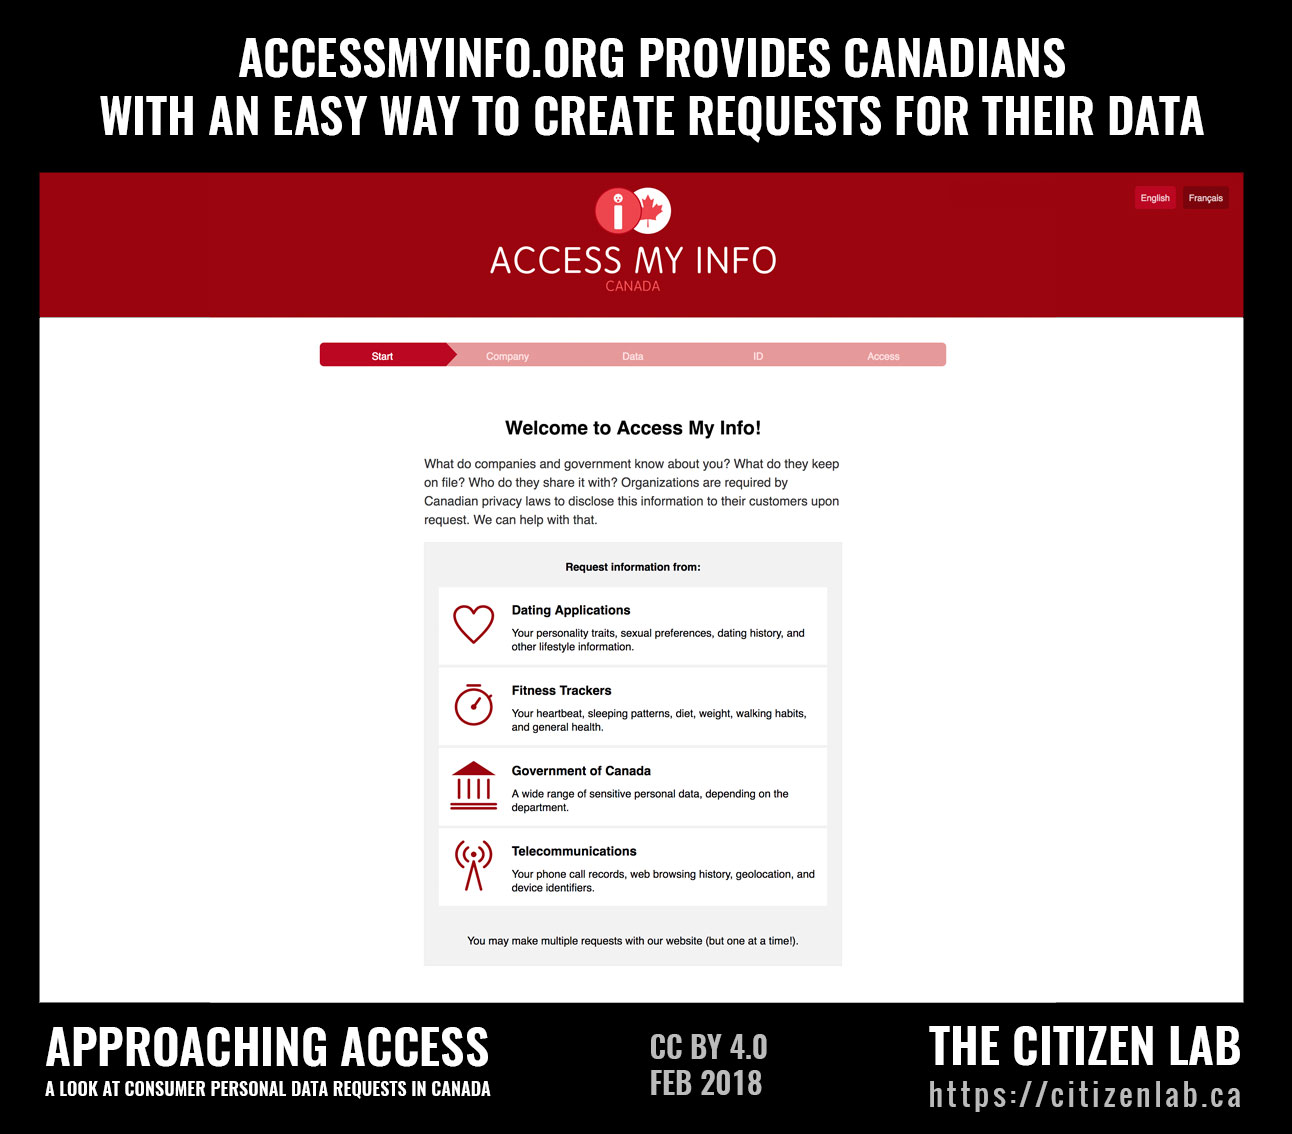 Approaching Access: A look at consumer personal data requests in